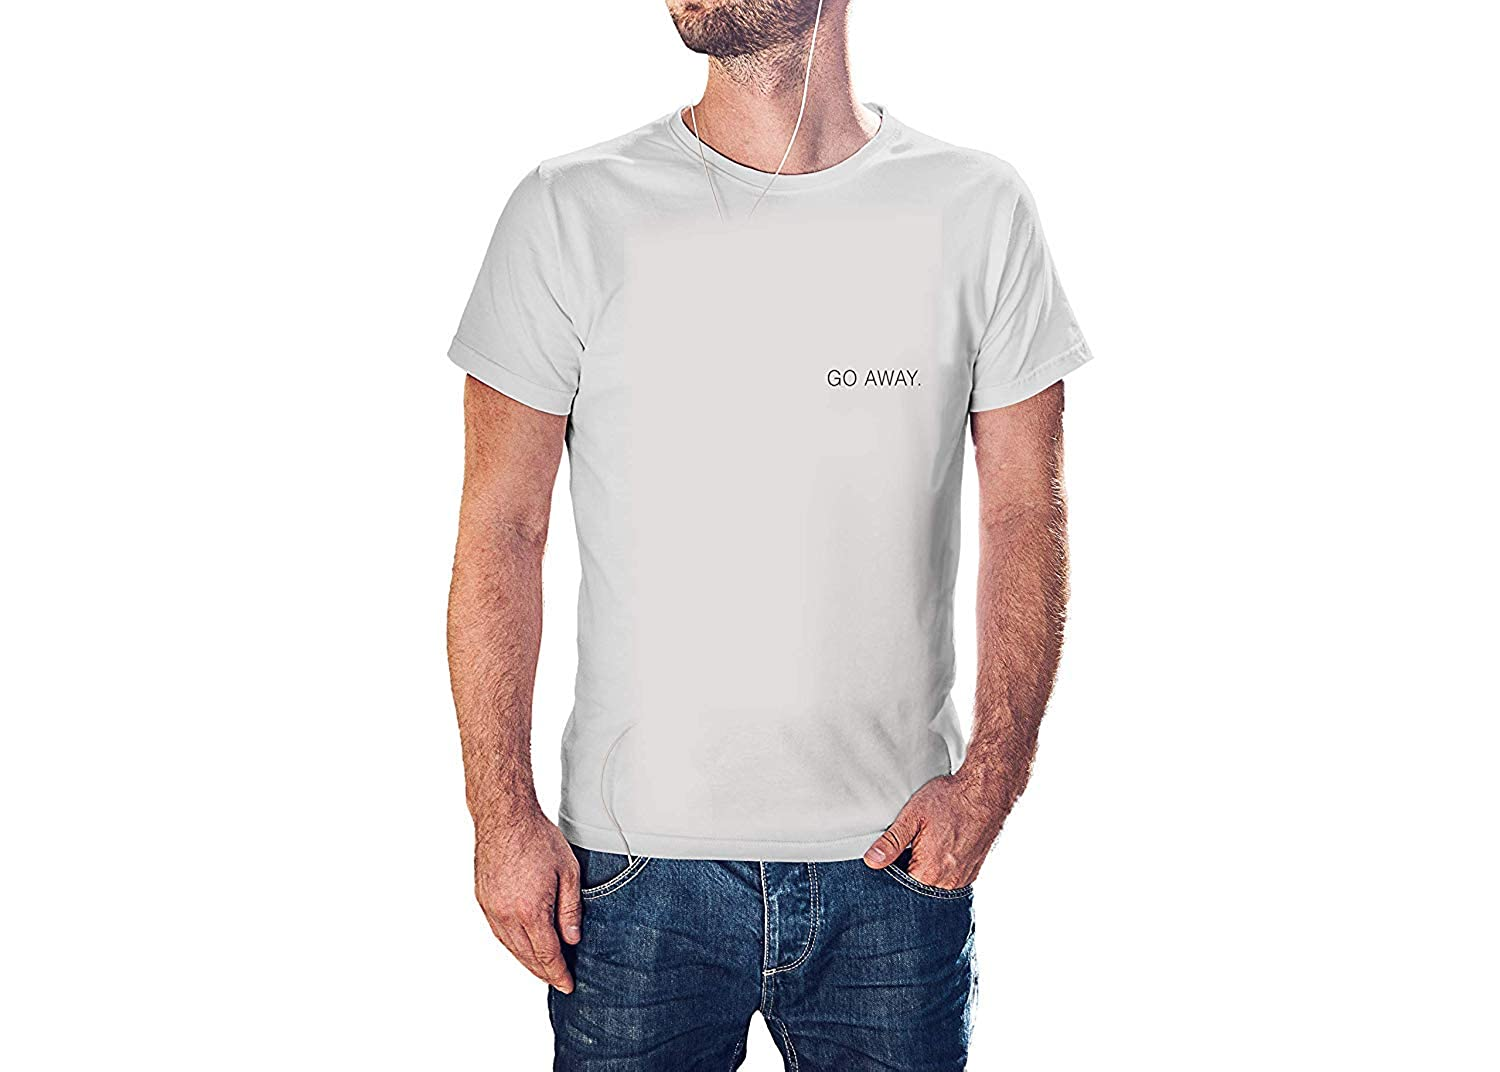 Kilsd GO Away T-Shirt J847 Modern Cool Tees for Men